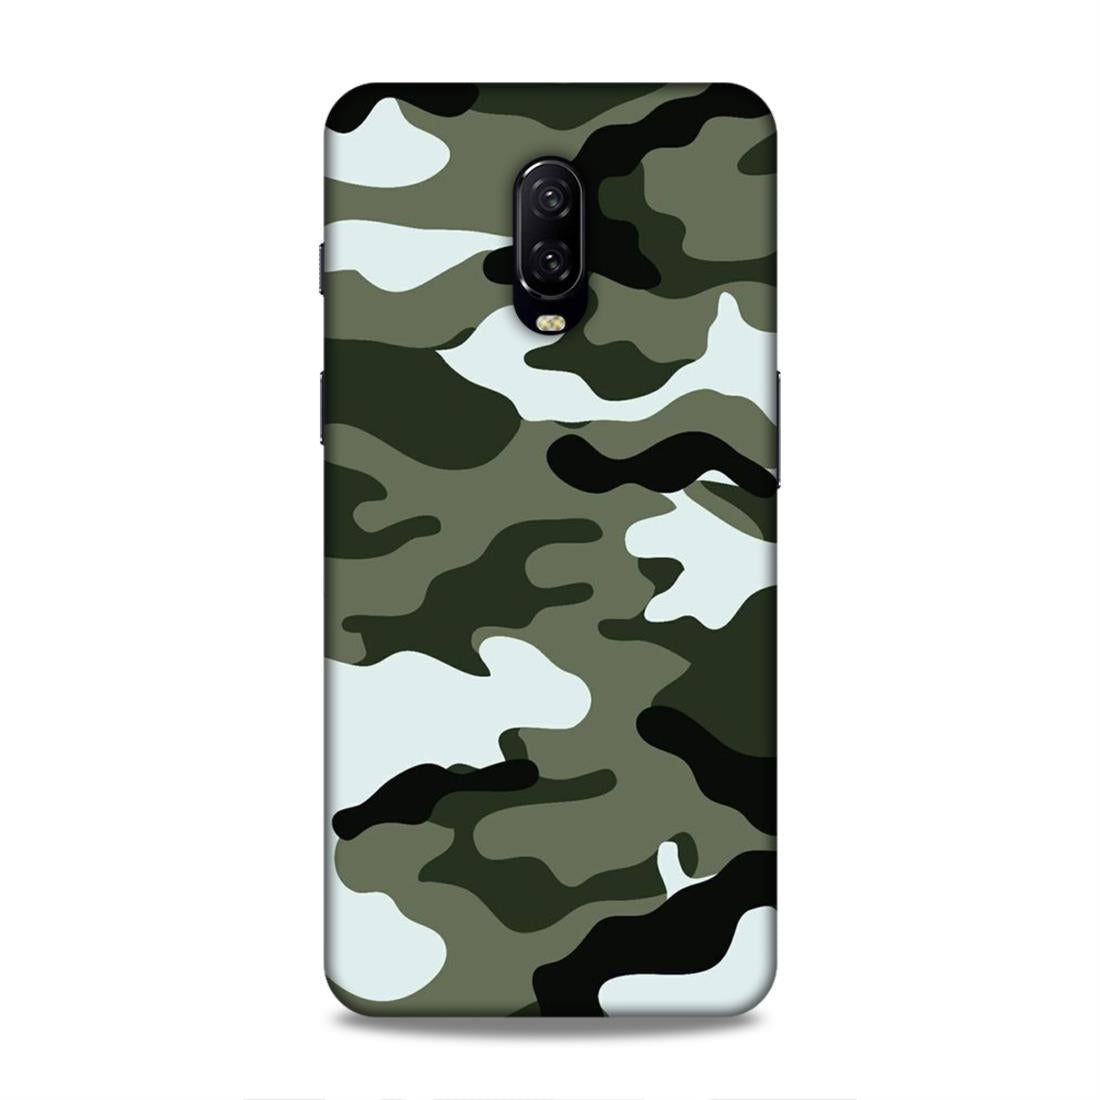 Phone Cases,Oneplus Phone Cases,OnePlus 6t,Gaming